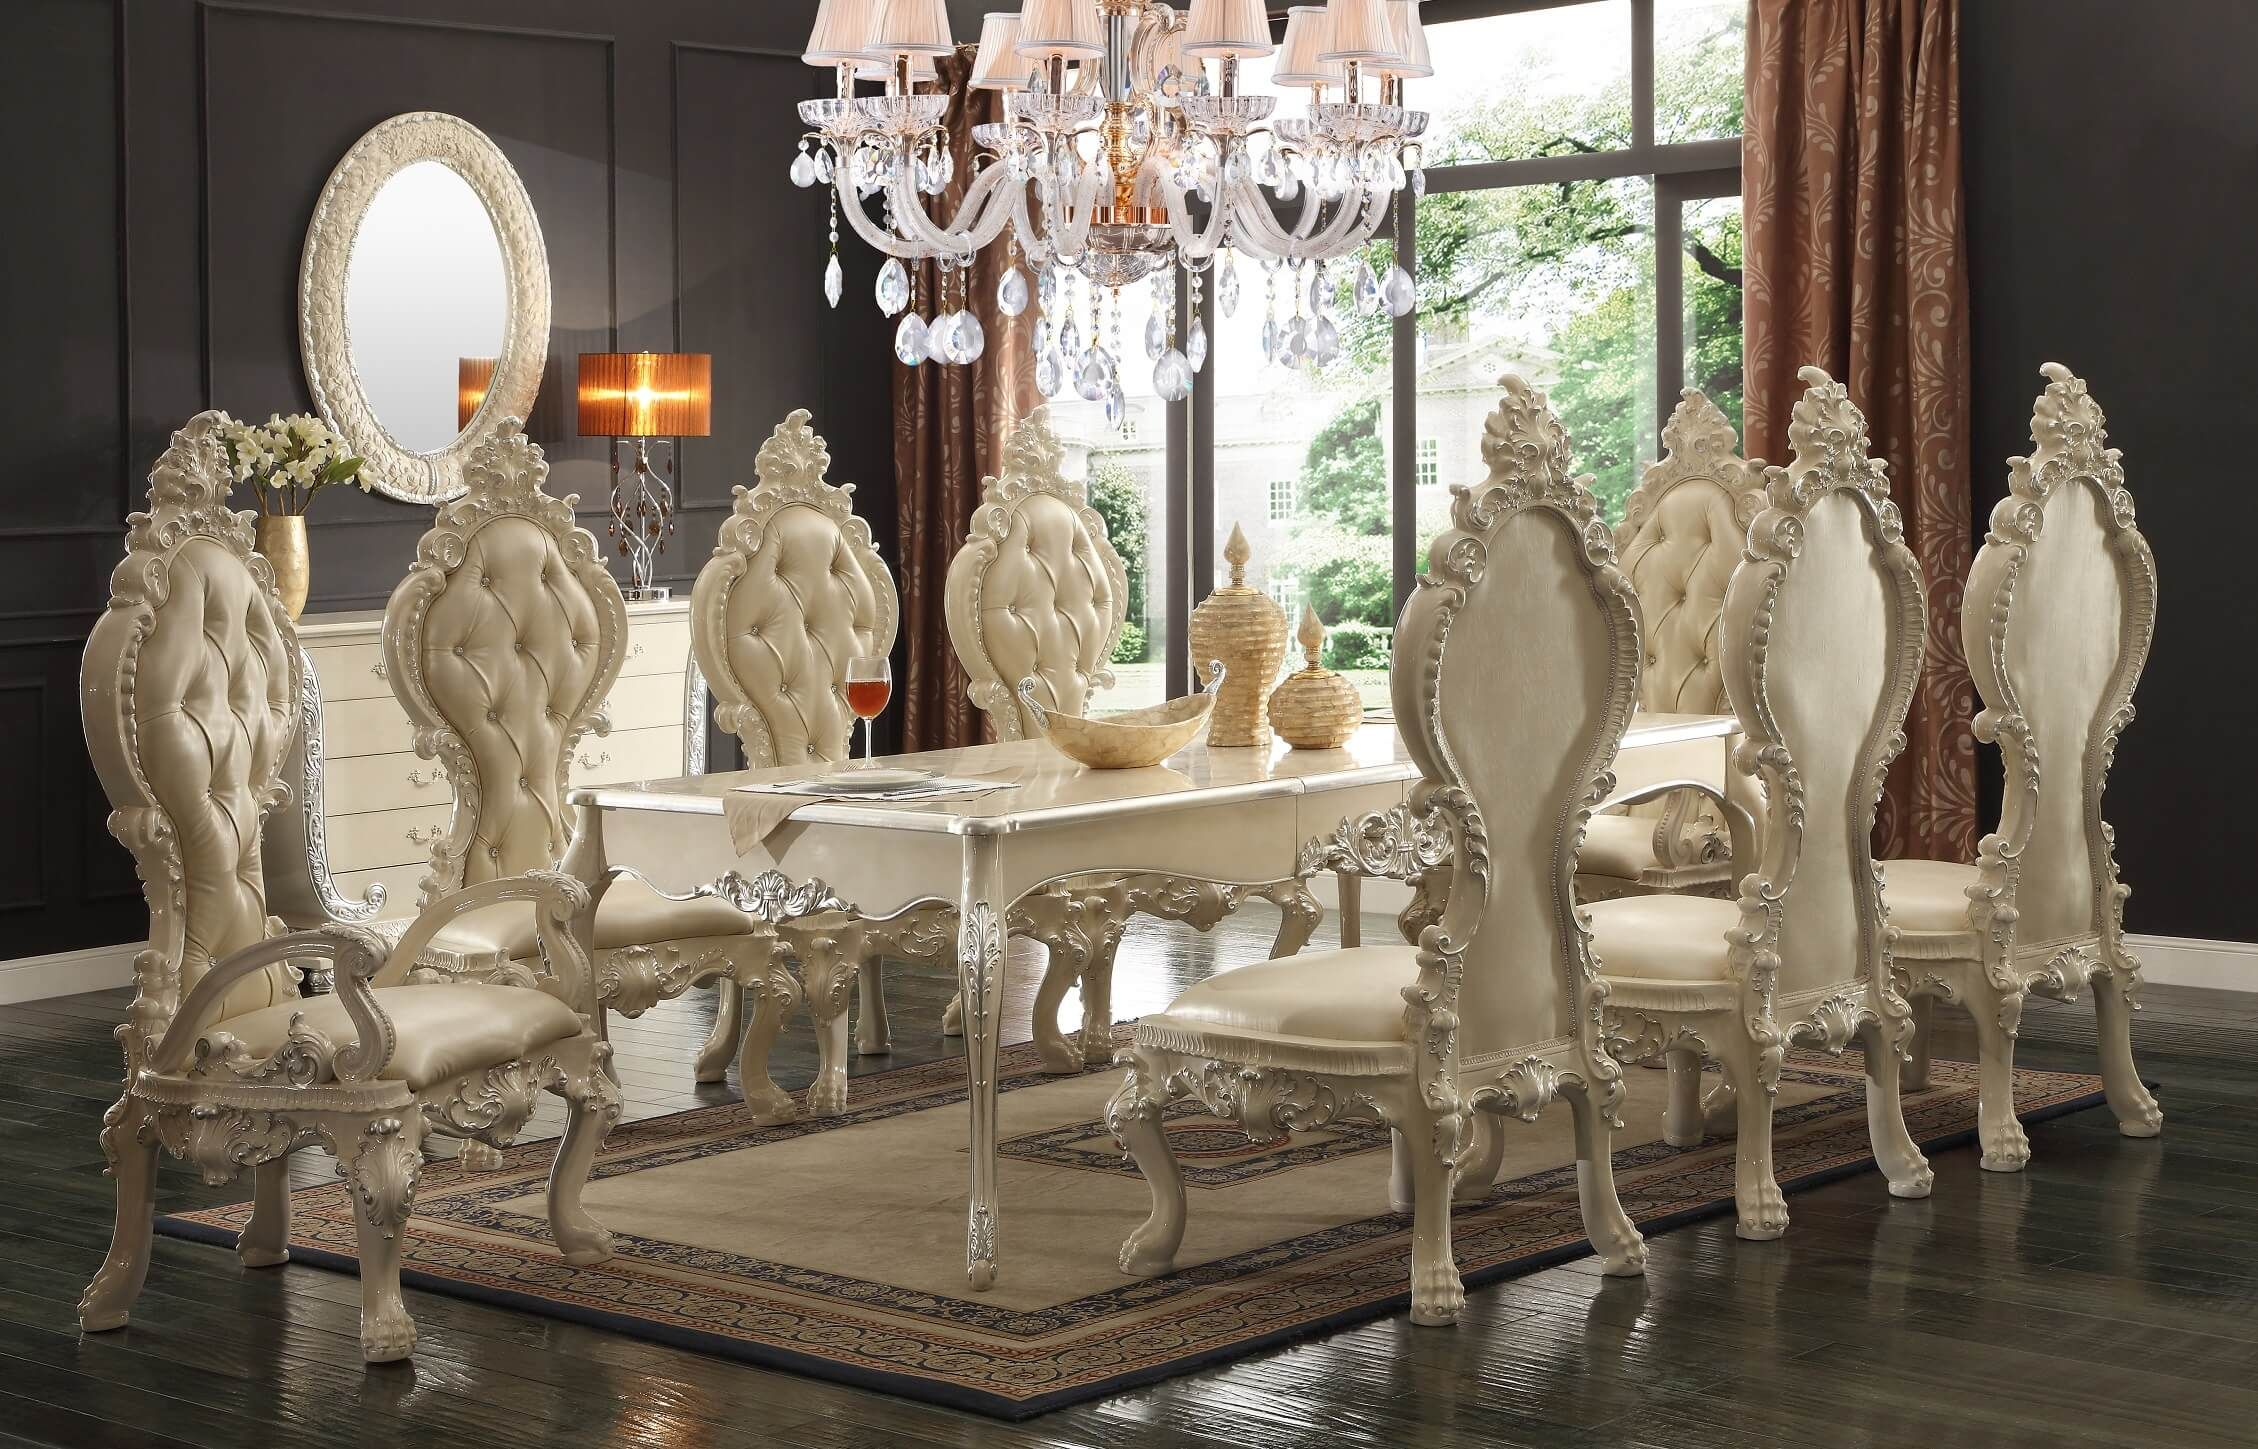 Hd 13012 Homey Design Royal Palace Dining Set Usa Furniture Warehouse Formal Dining Room Sets Luxury Dining Luxury Dining Room